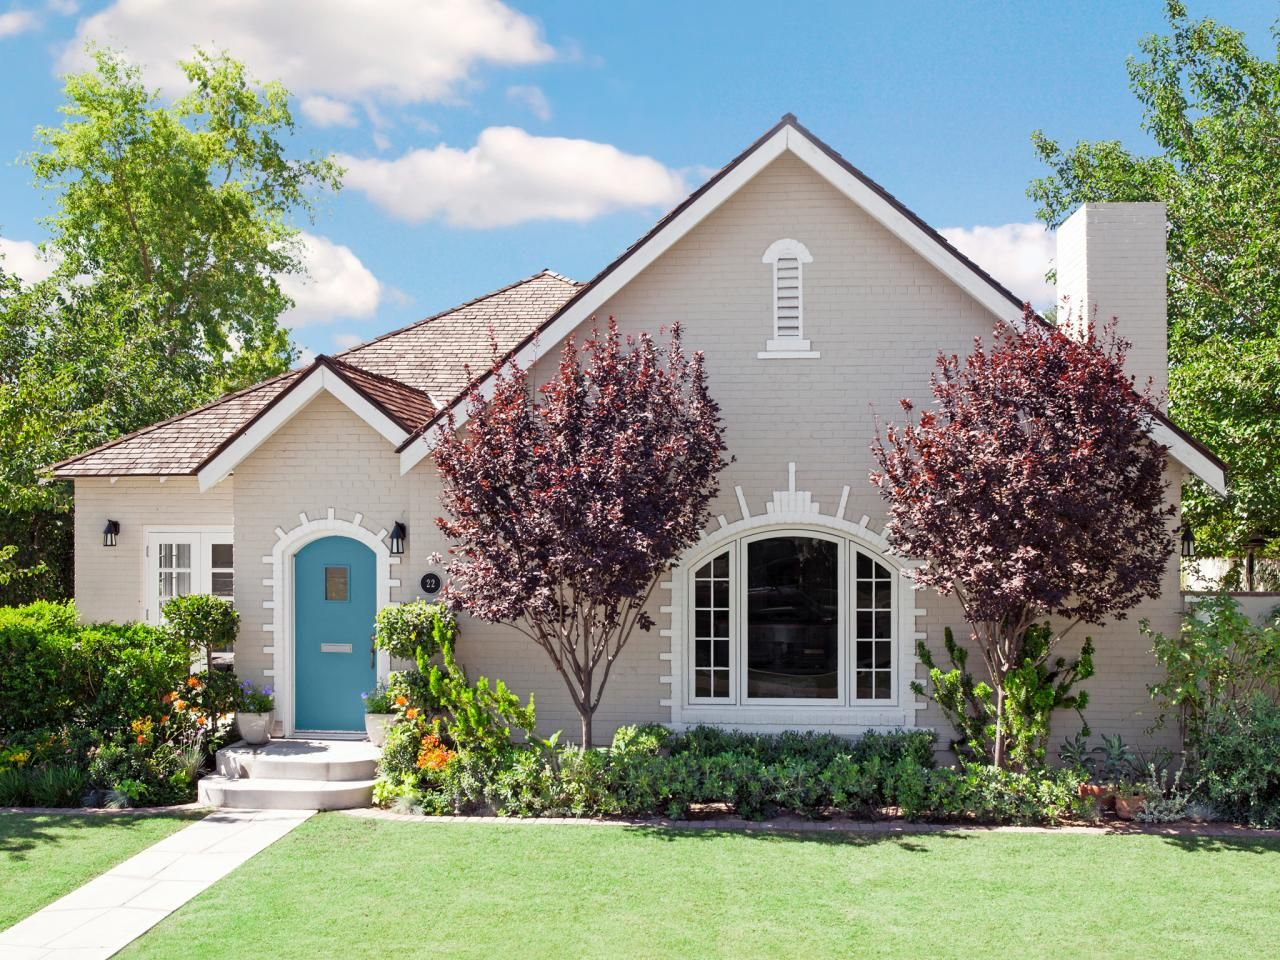 Curb appeal inspiration from phoenix arizona doors for Arizona exterior house colors